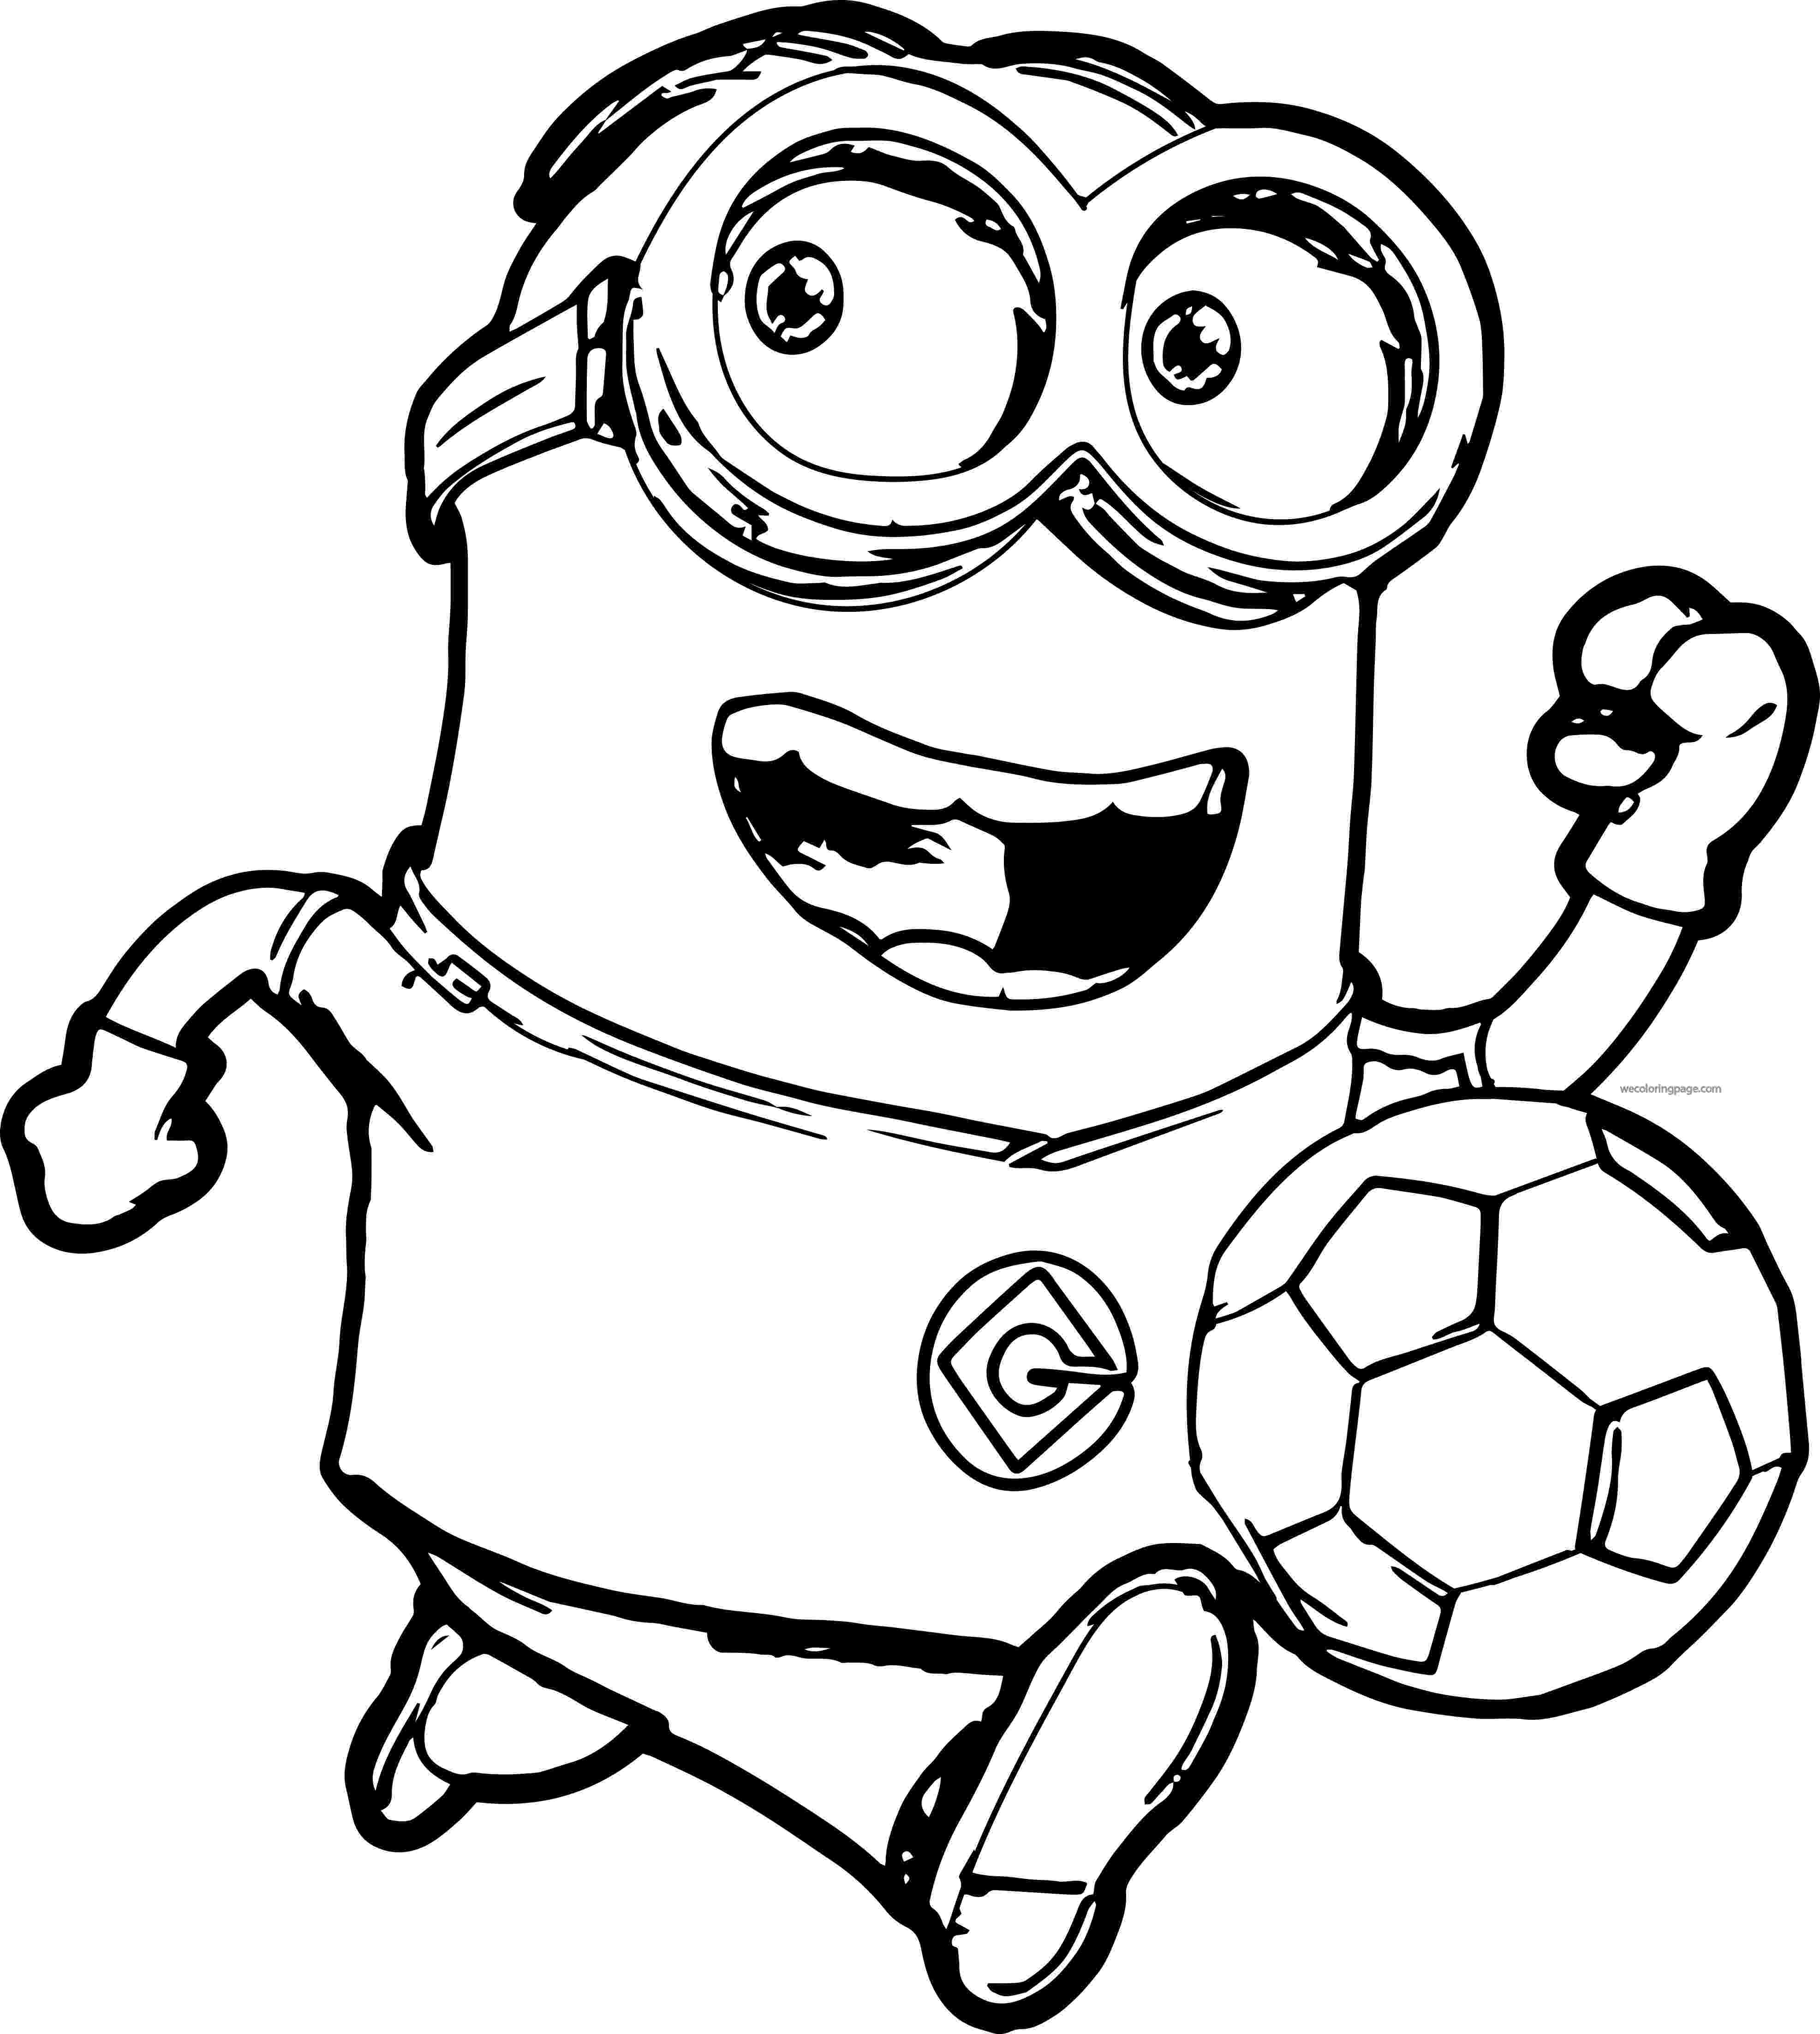 minion coloring minion coloring pages best coloring pages for kids minion coloring